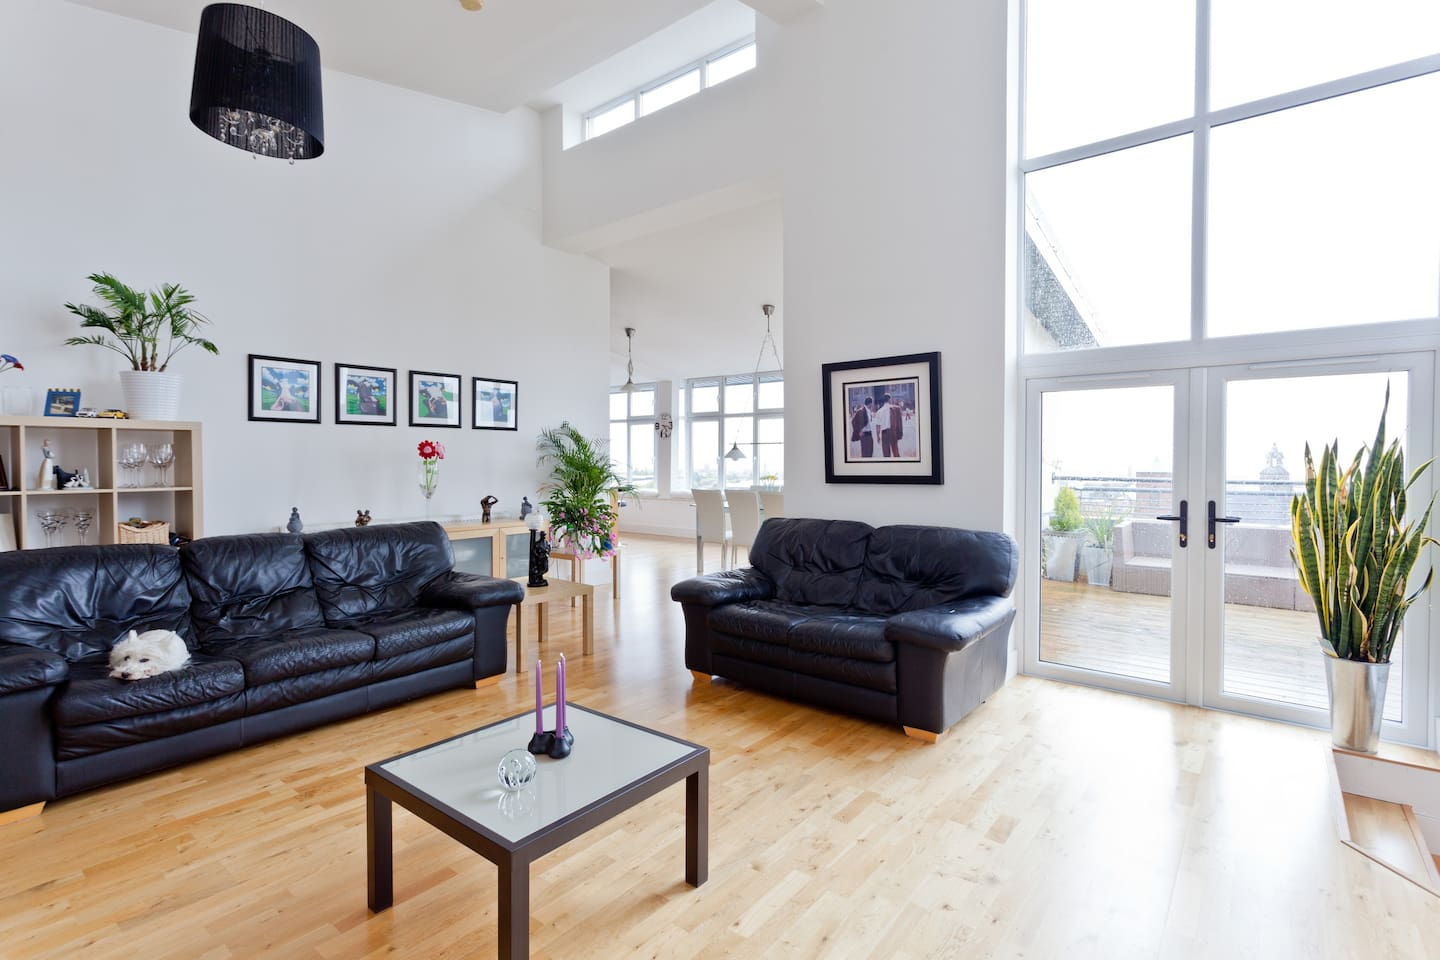 Bright and spacious living with dining and kitchen area in the background....leading unto deck and roof garden.